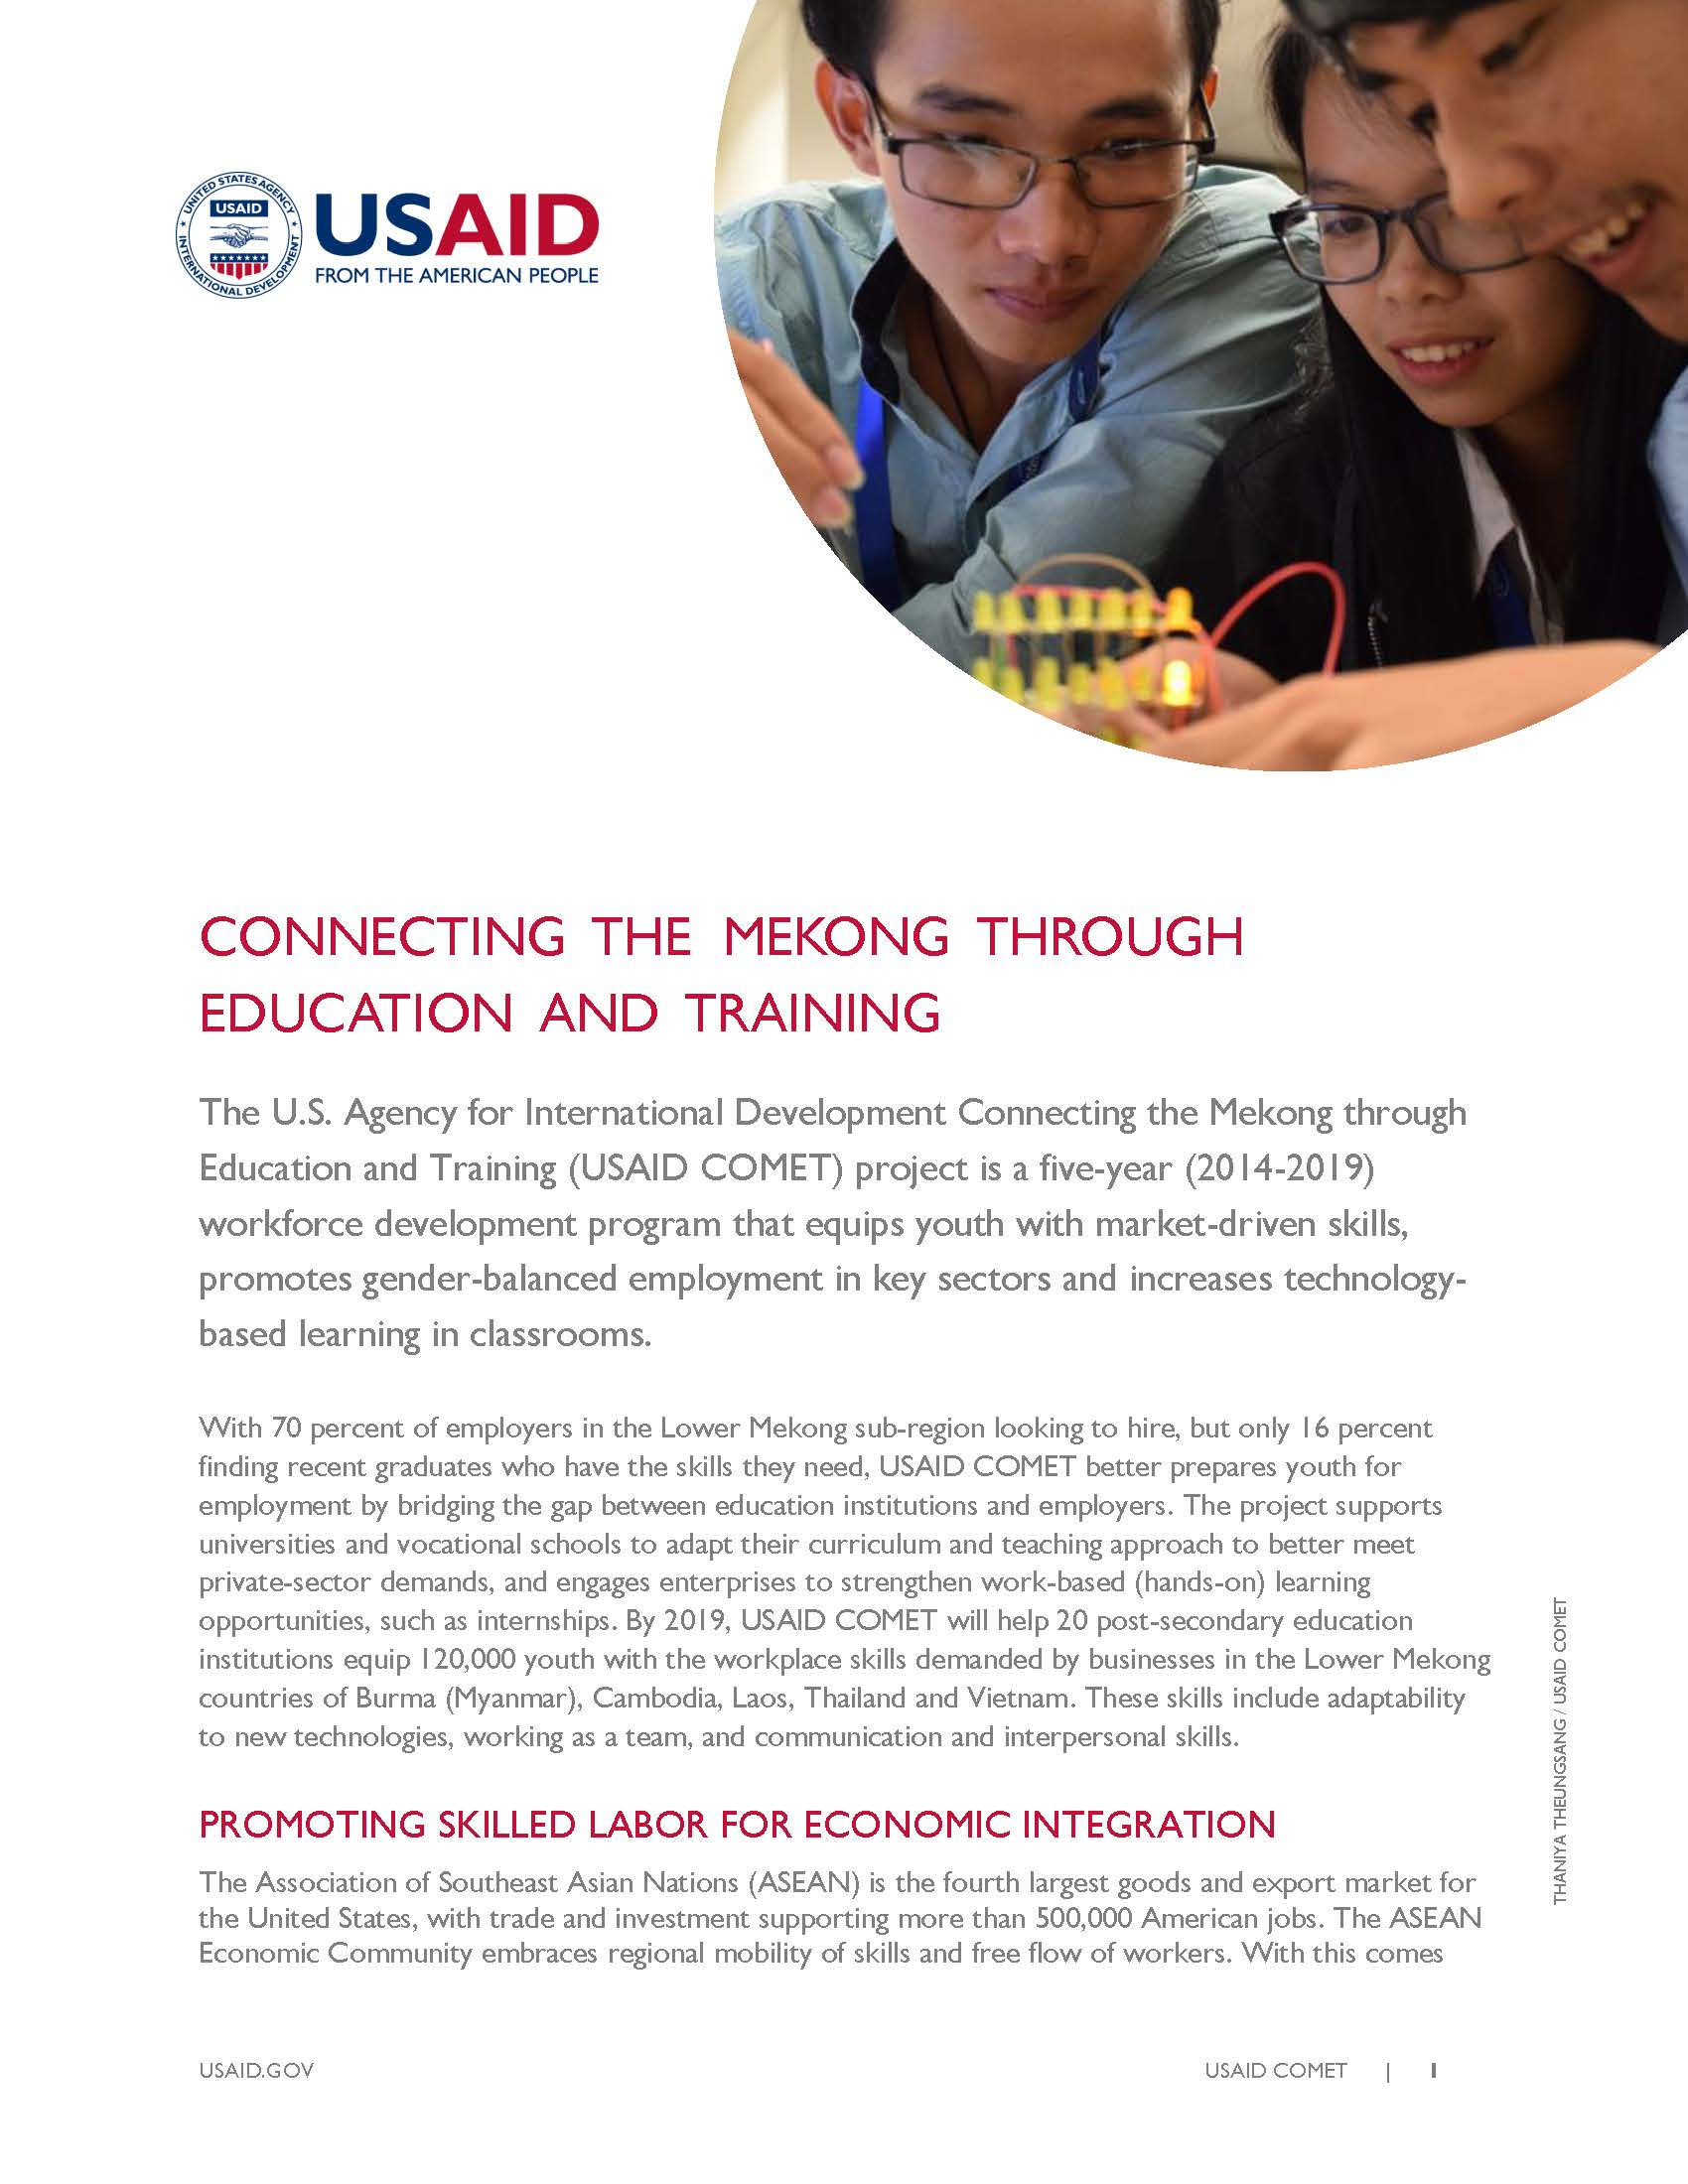 Connecting the Mekong through Education and Training